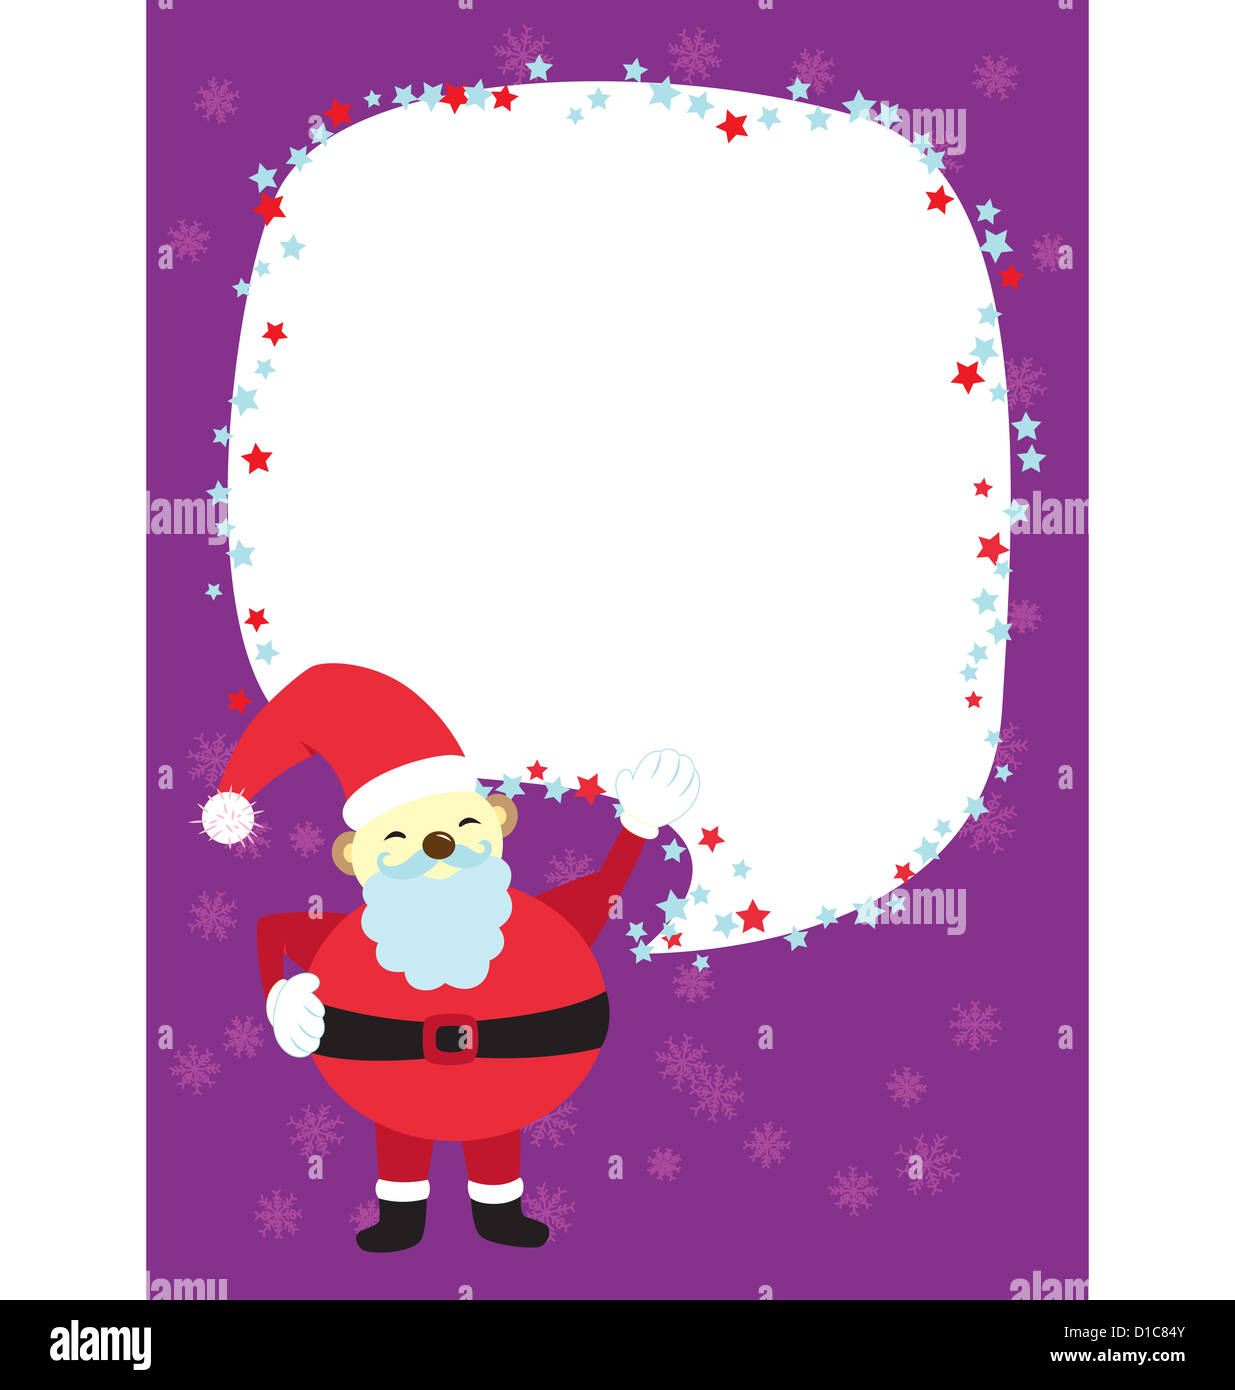 A template for christmas greeting card or gathering invitation with a template for christmas greeting card or gathering invitation with as santa clause sending the message stopboris Gallery